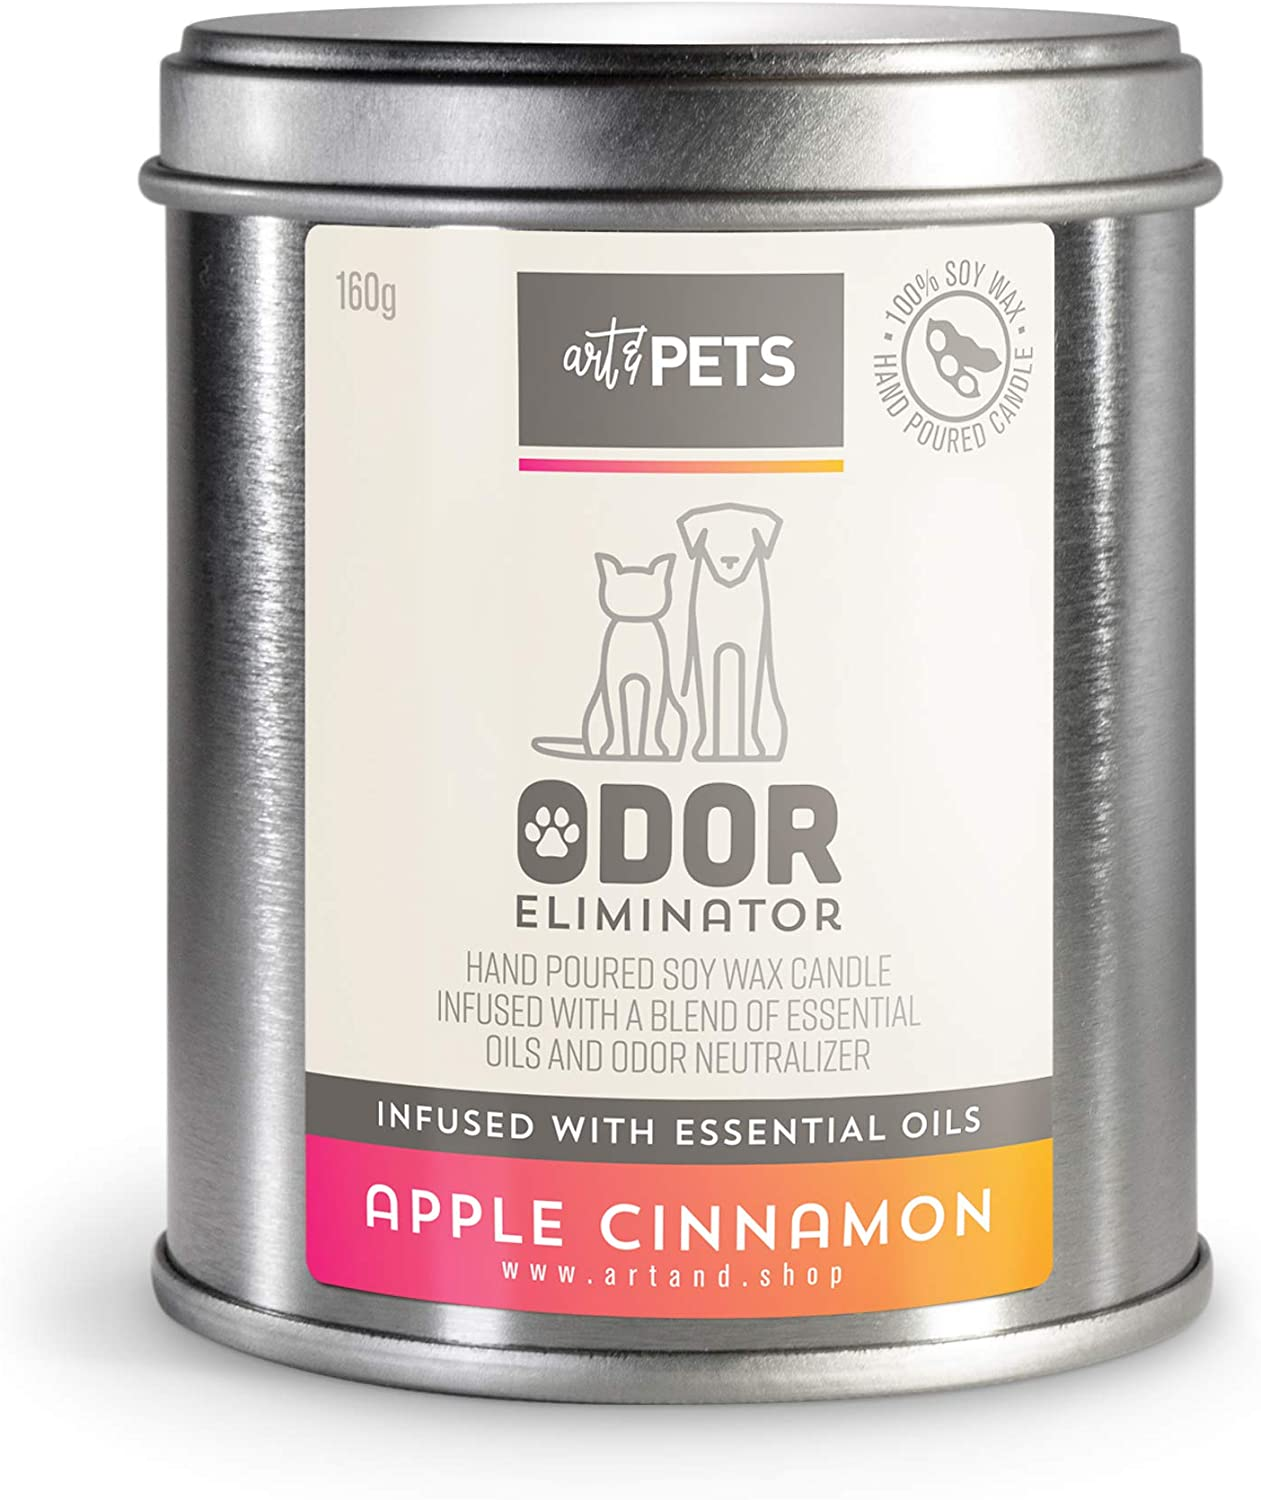 Art & Pets Pet Odor Eliminator Candle Appx 72 Hrs Burning Time | Natural Scented Soy Wax Candle | Dog Smell Eliminator Candle | Cat and Dog Odor Eliminator Candle | Pet Candle